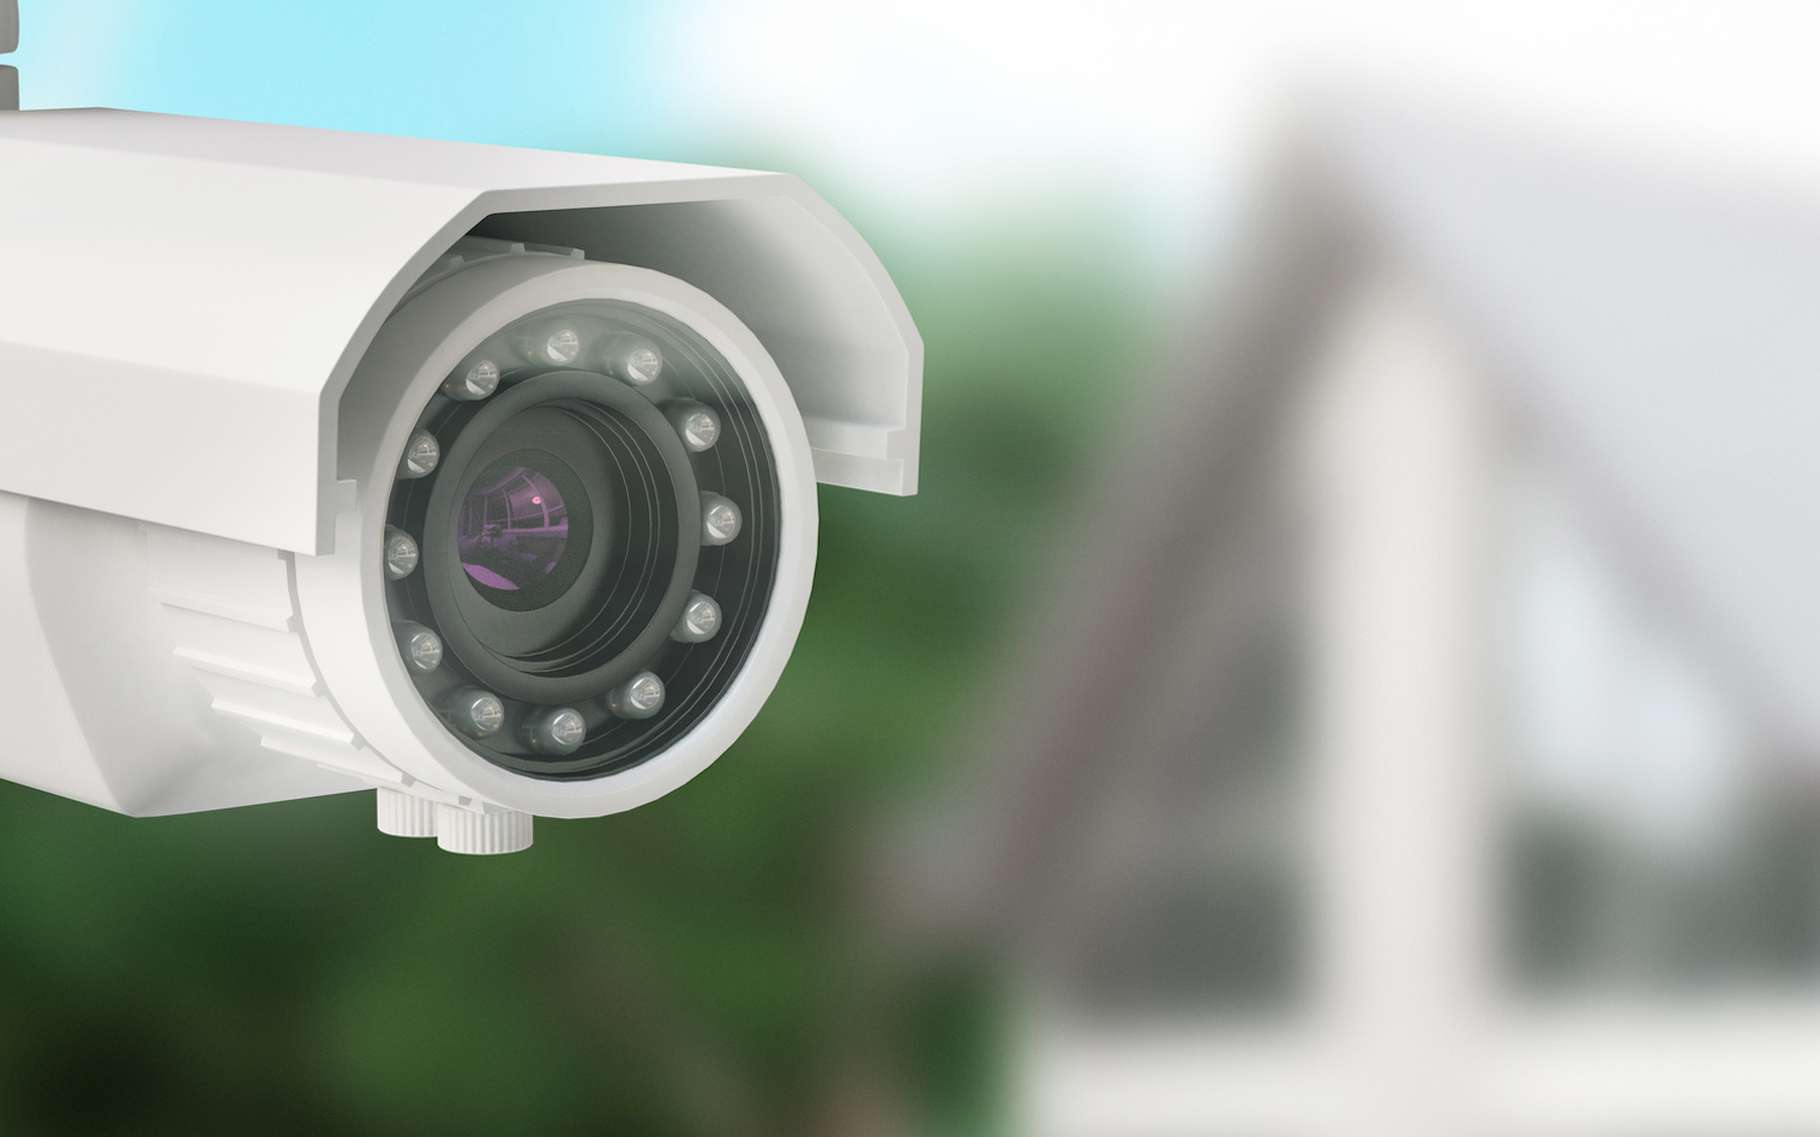 Les caméras de surveillance coûtent désormais quelques dizaines d'euros et peuvent être visionnées via une simple application pour mobile. Mais, attention, on ne peut pas faire n'importe quoi avec. © AldacaStudio, Fotolia